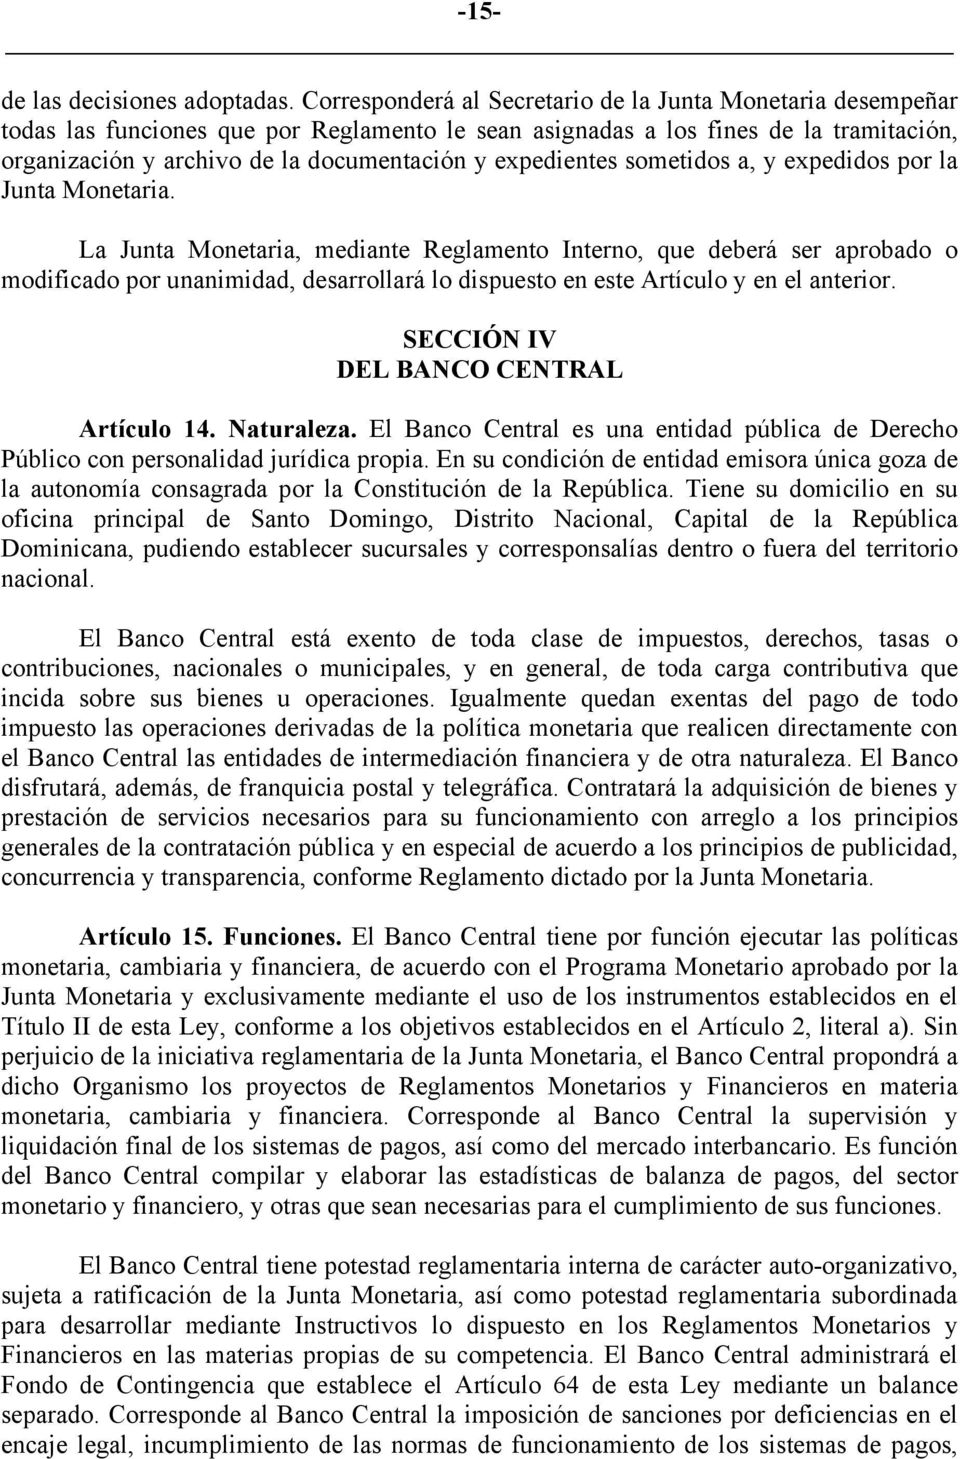 expedientes sometidos a, y expedidos por la Junta Monetaria.